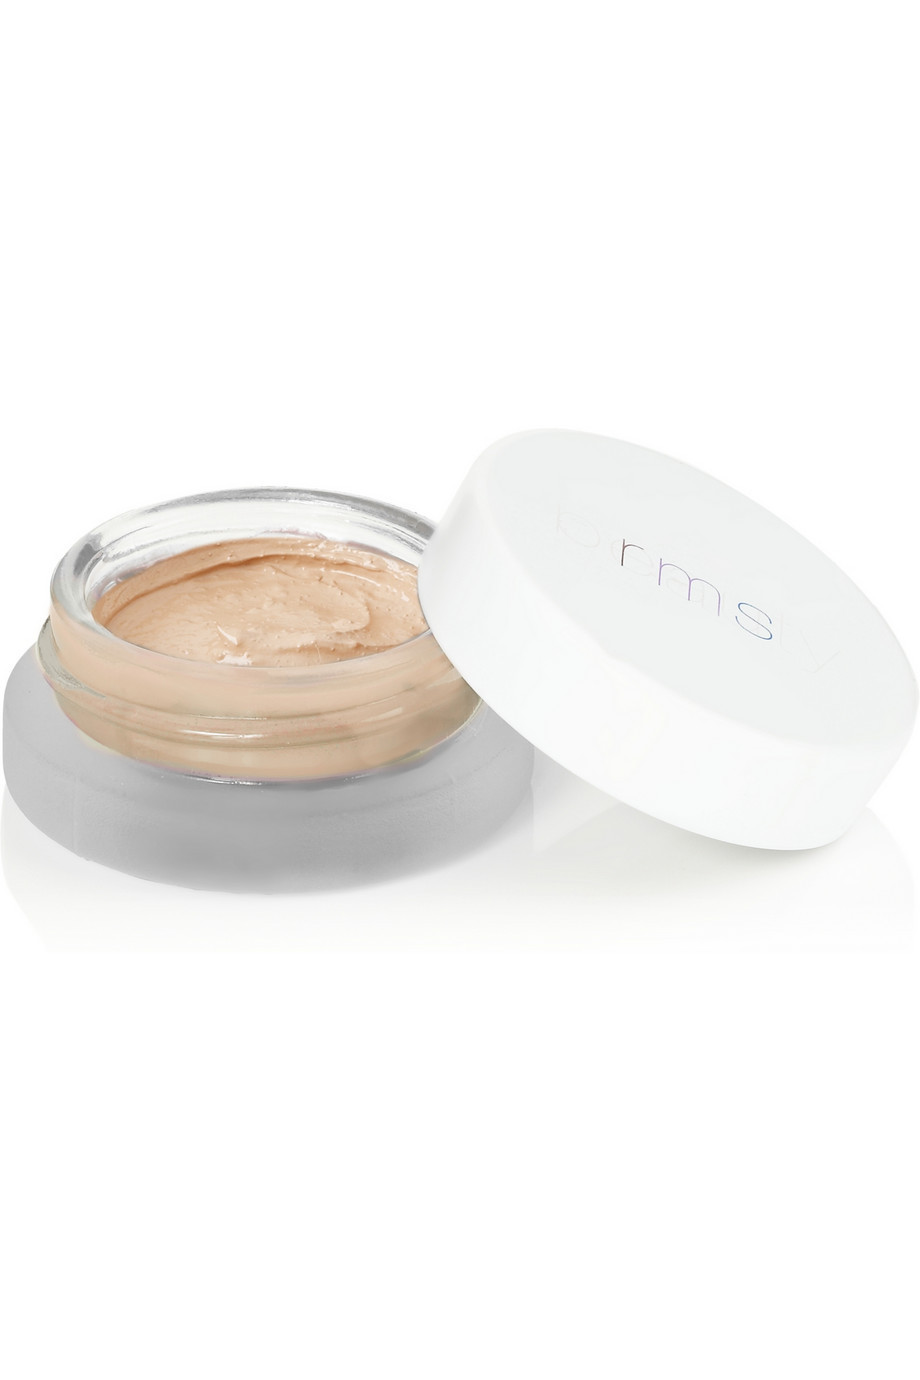 RMS Beauty Un Coverup - Shade 00 in neutral